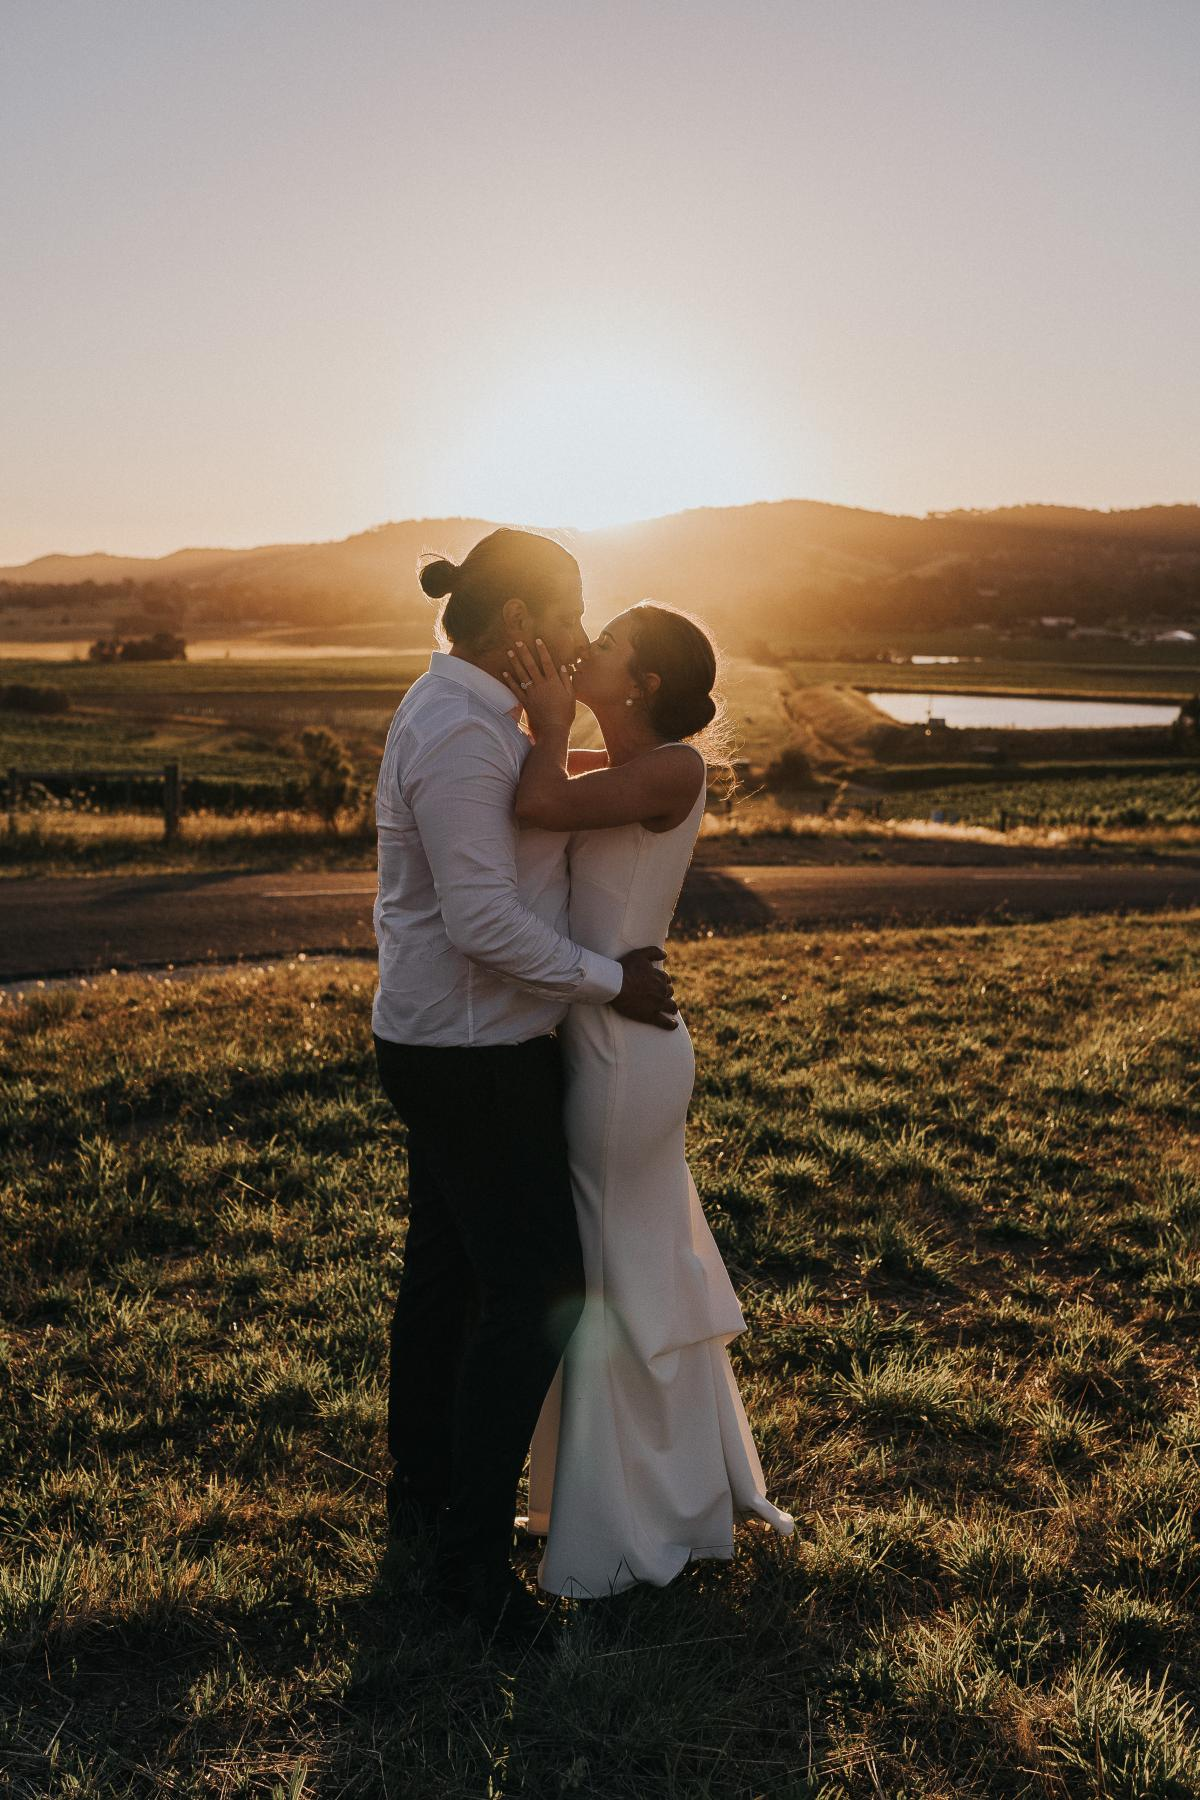 KWH Real bride Kate and Mik kiss in front of the sunset as she wears the modern, sleek, Arabella gown by KWH.